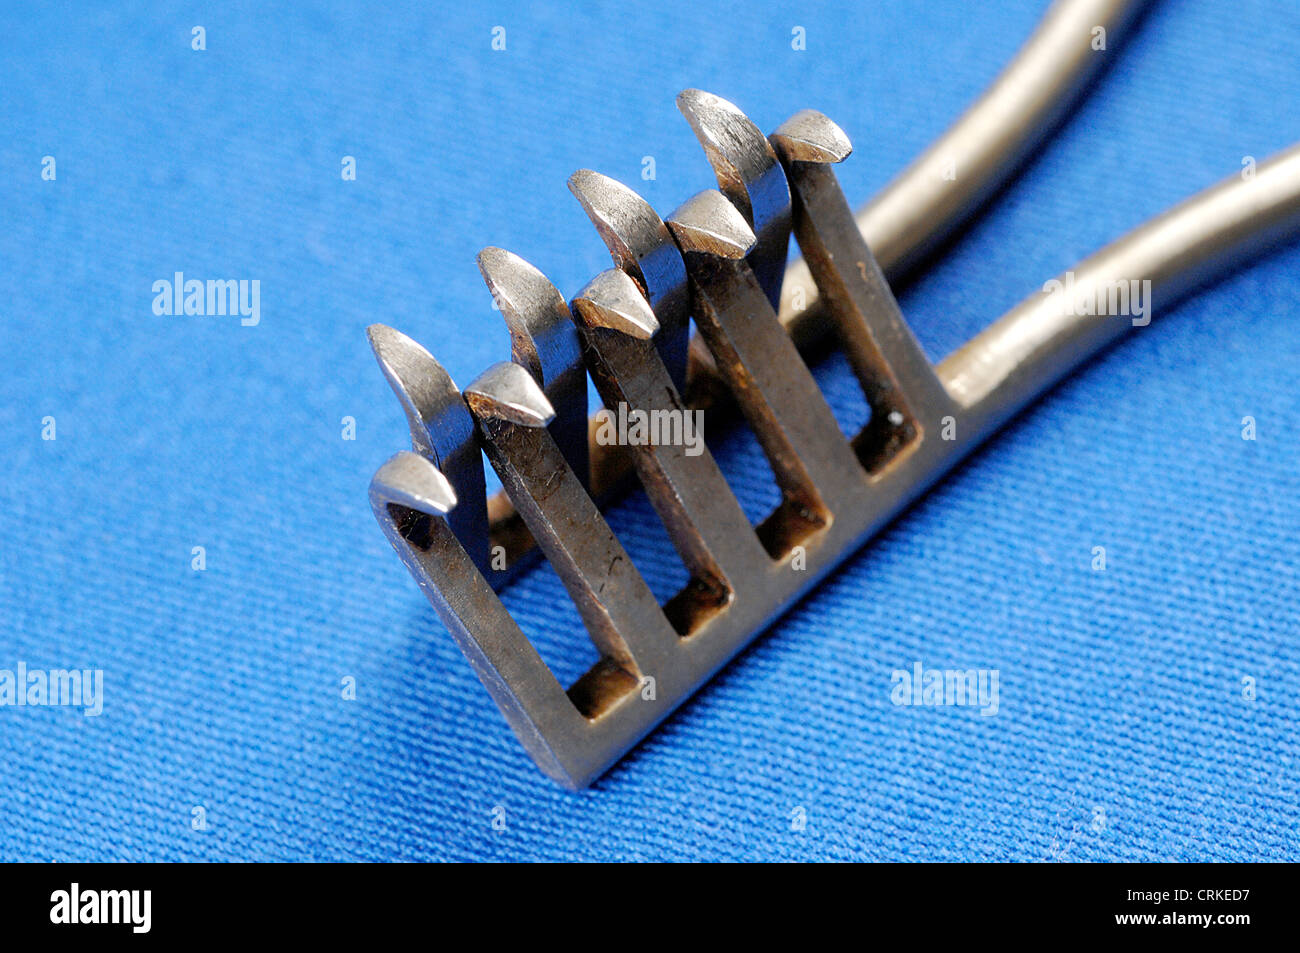 The toothed ends of Traver's forceps. - Stock Image